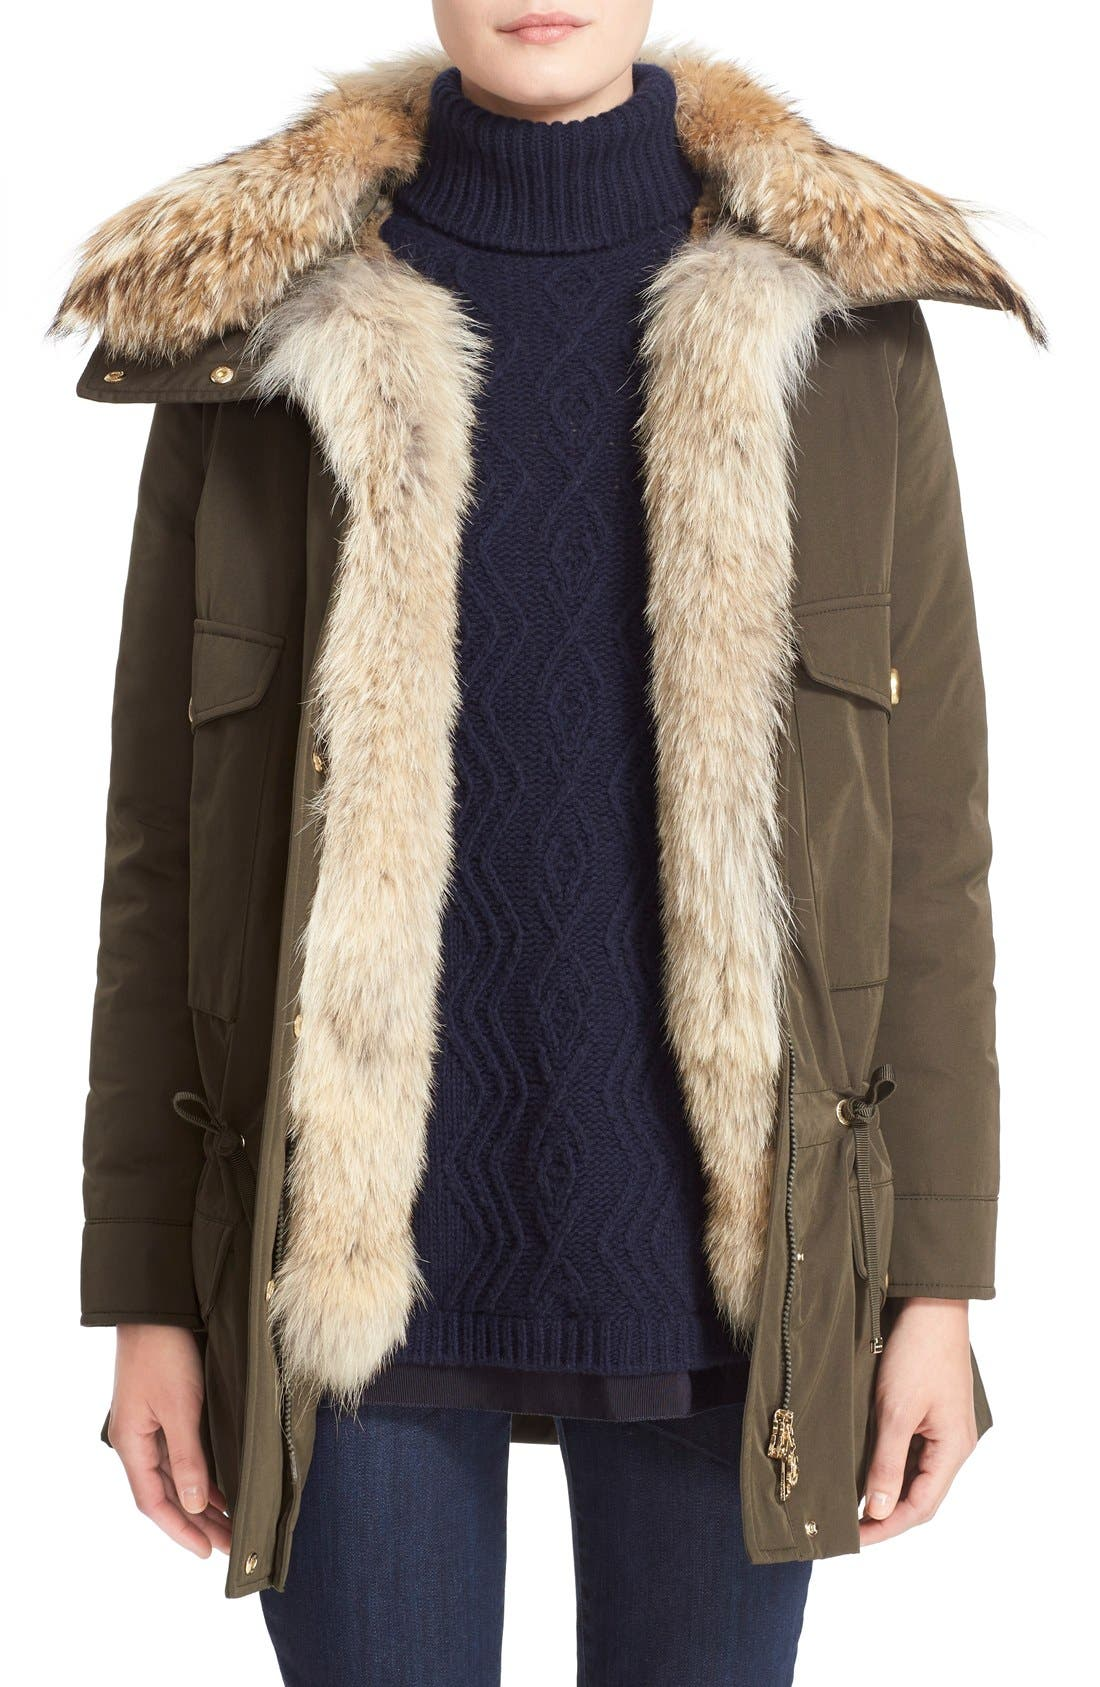 'Margarita' Down Jacket with Removable Genuine Coyote Collar and Rabbit Fur Vest,                             Main thumbnail 1, color,                             307